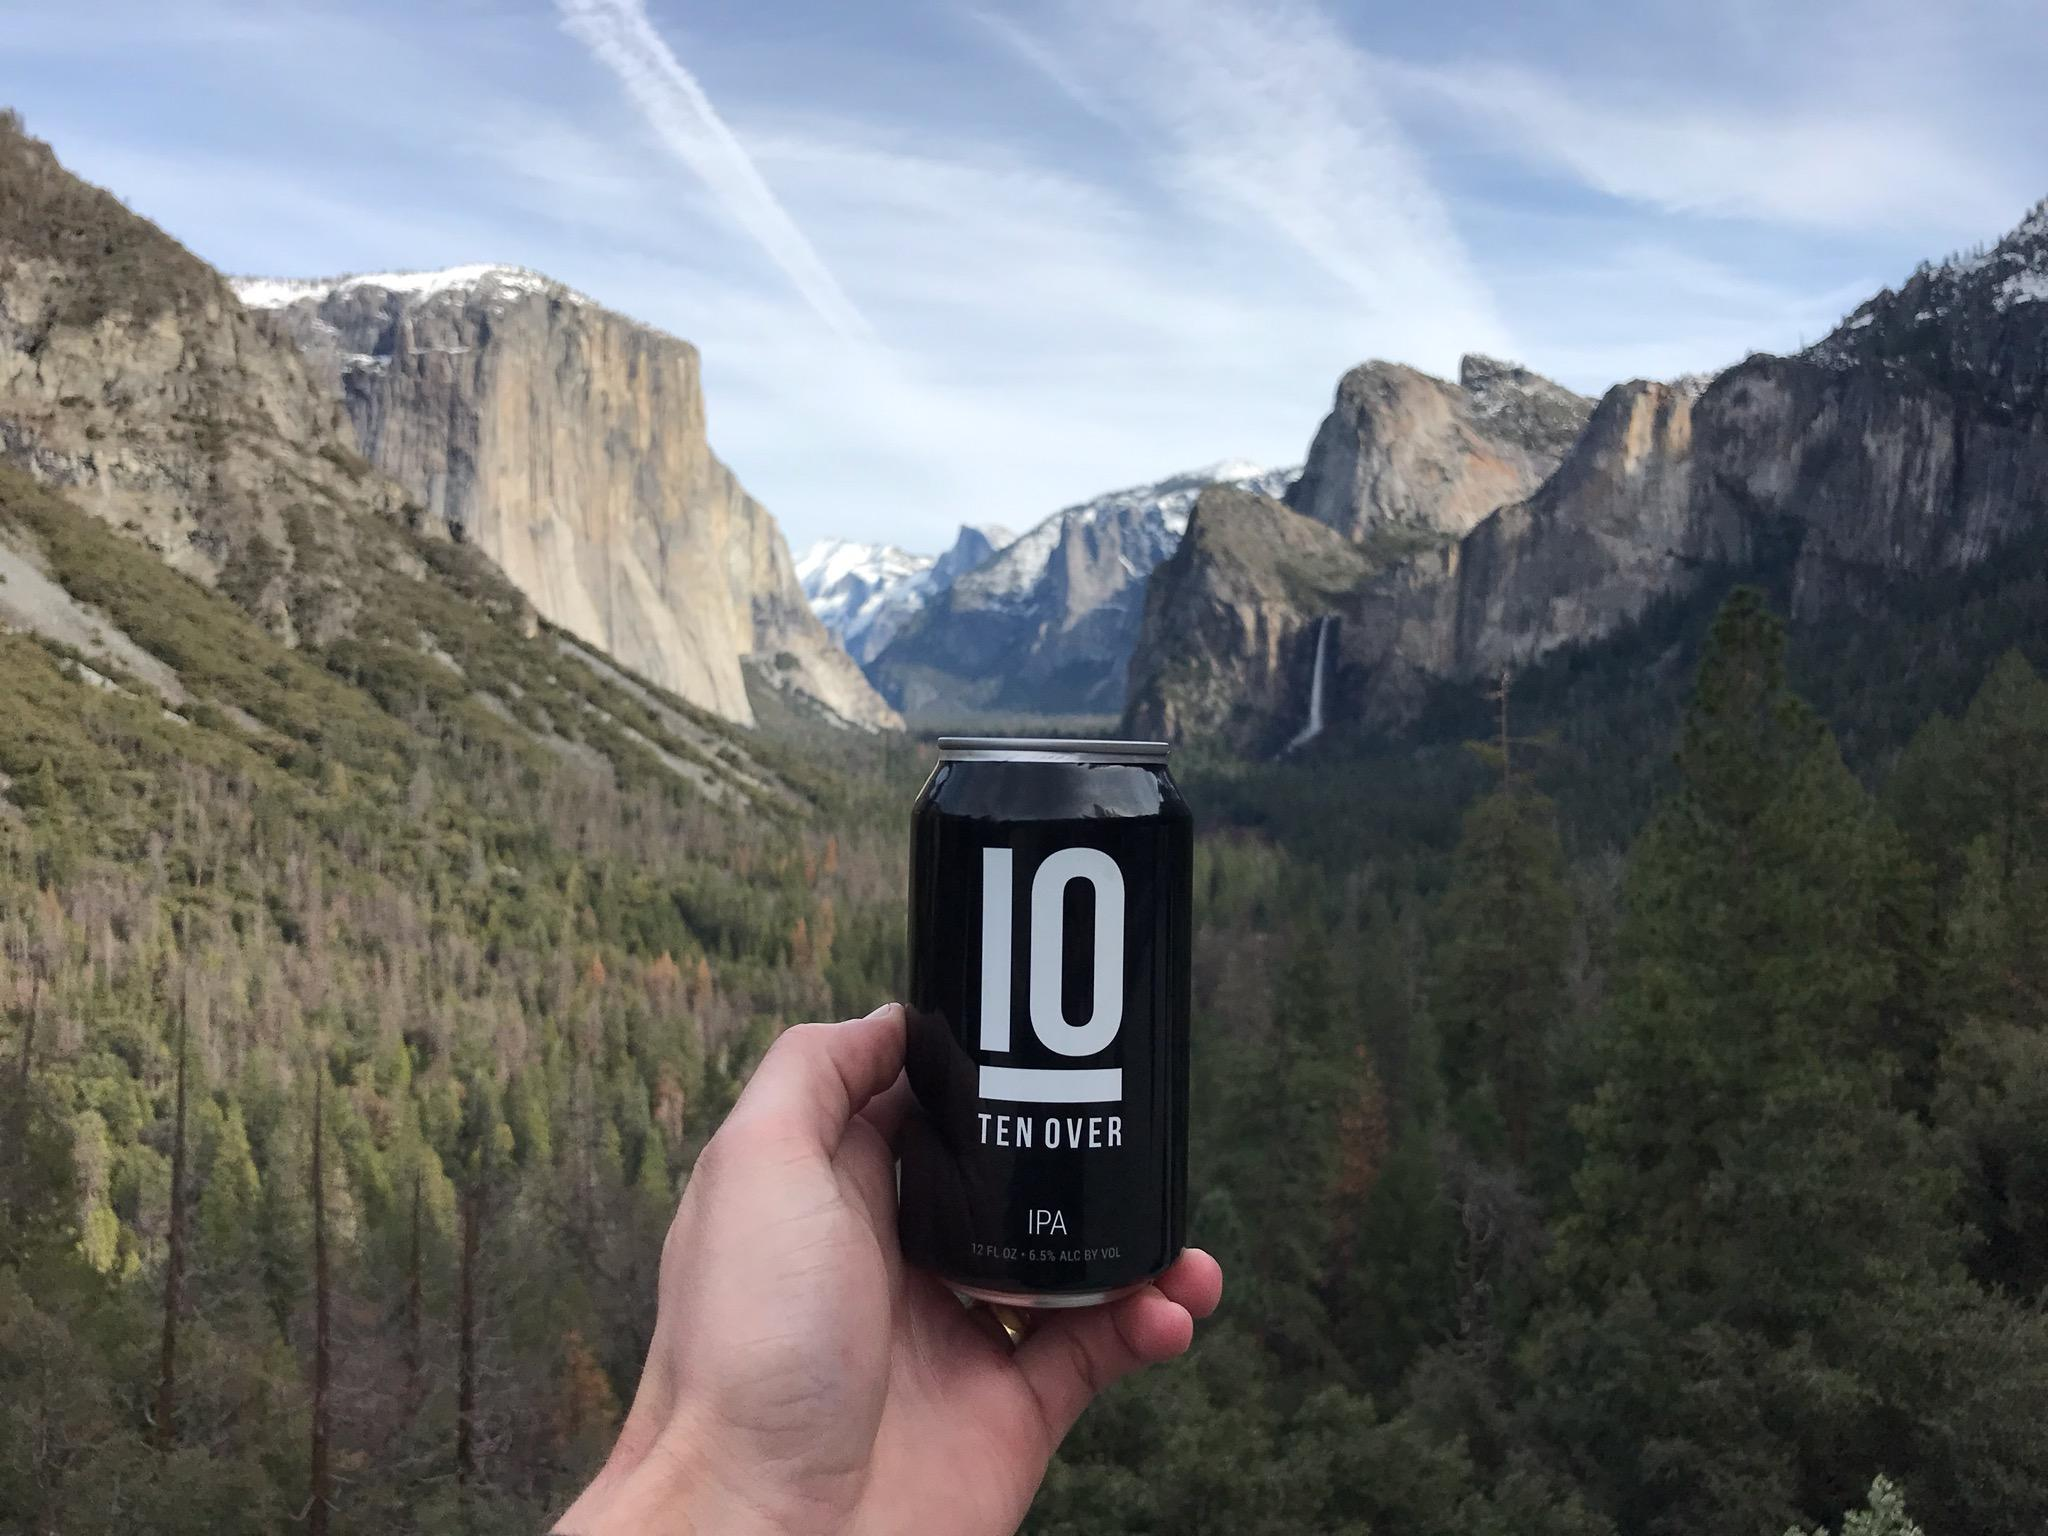 TEN OVER IPA Yosemite.jpg